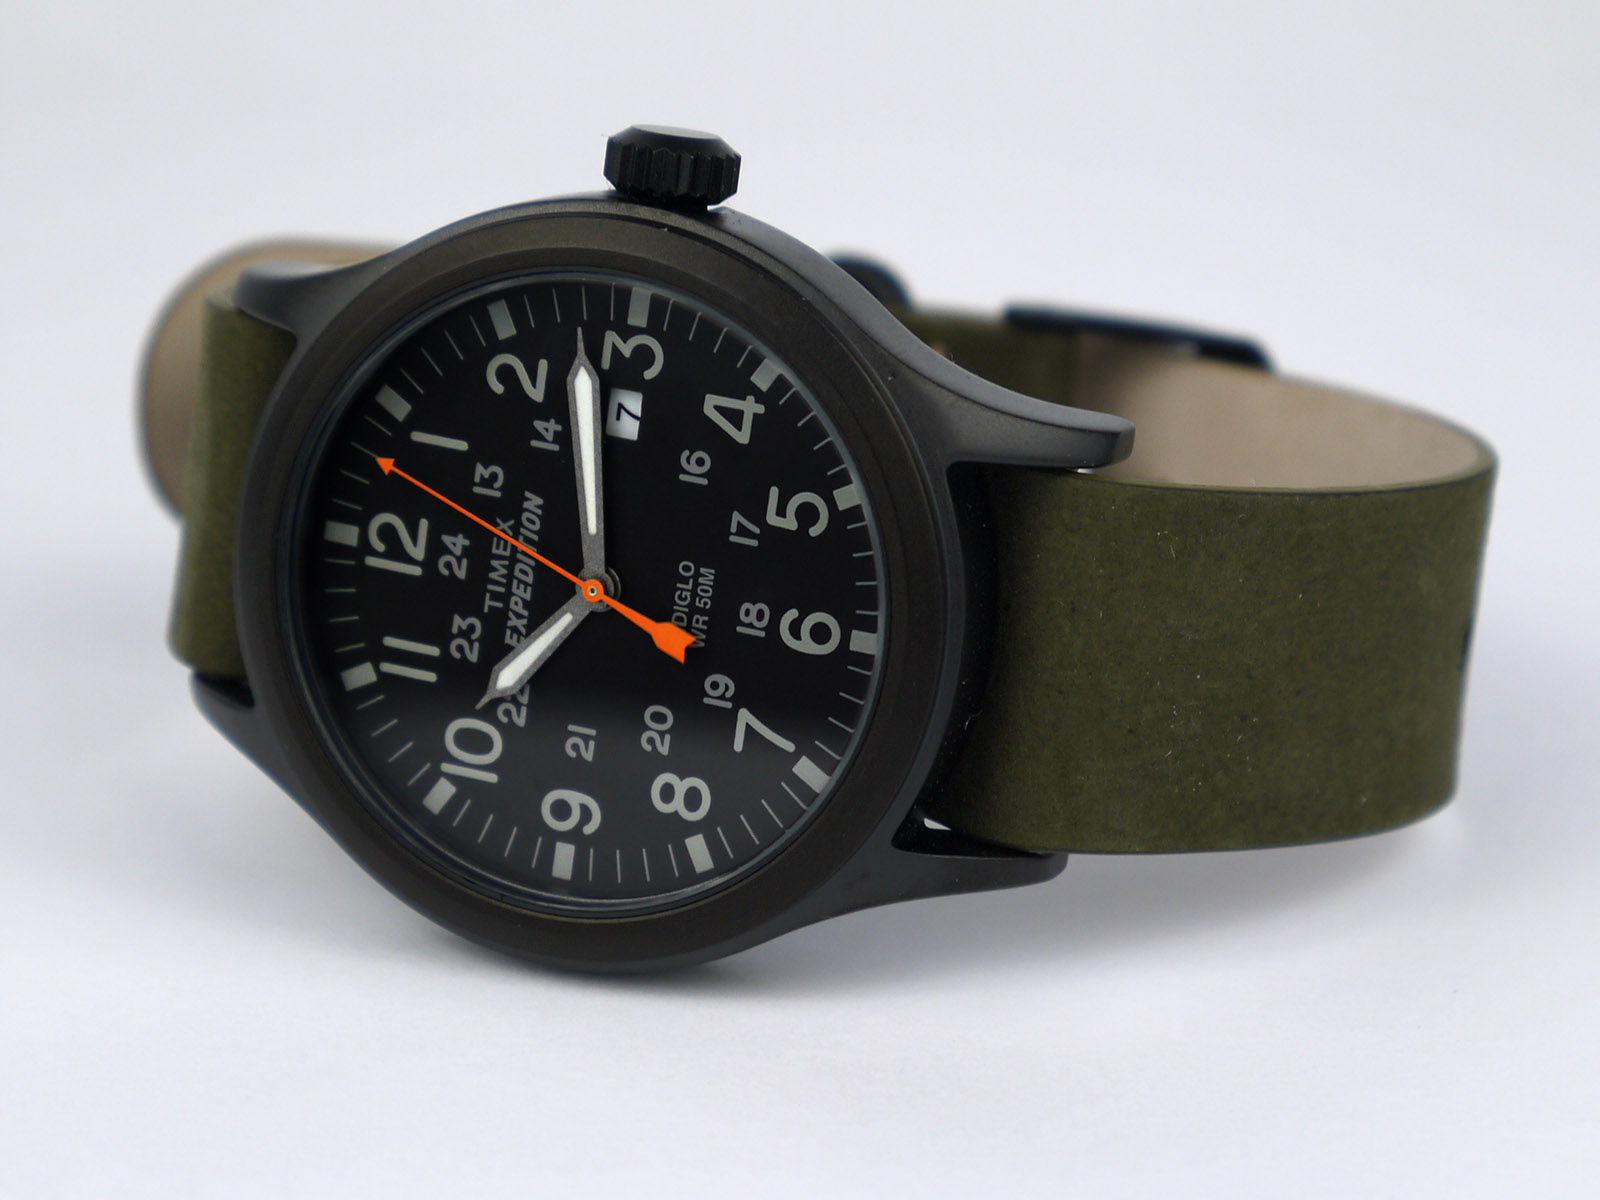 Timex Expedition Indiglo Instructions | Our Everyday Life